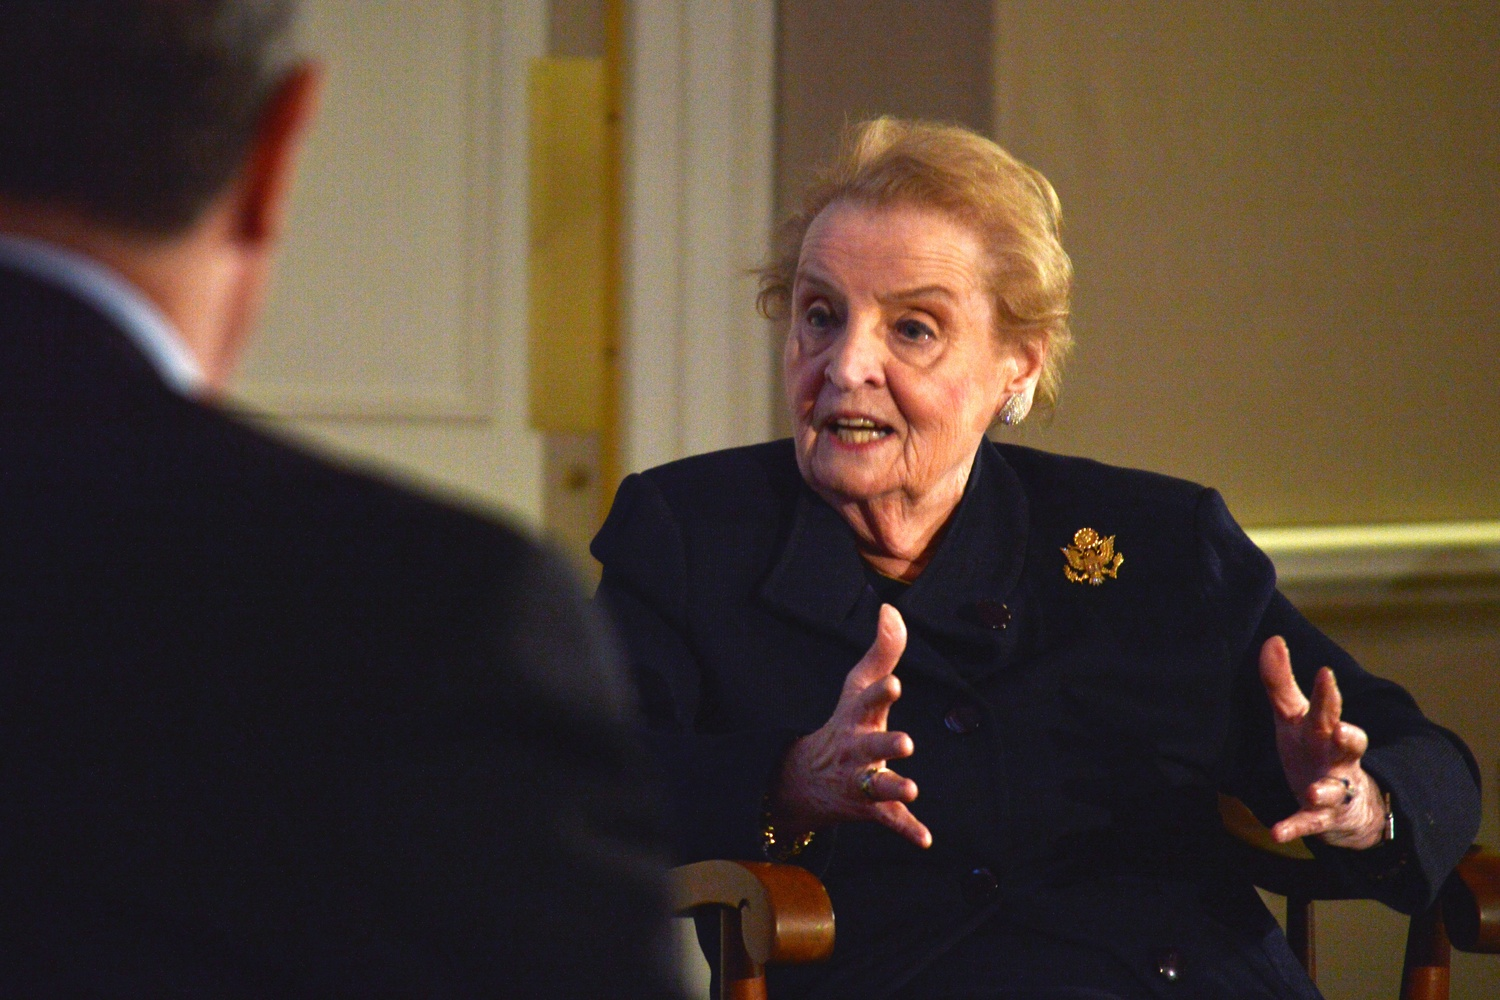 Former Secretary of State Madeleine K. Albright speaks of her diplomatic experiences with Slobodan Milošević and other challenging negotiations during her time with the Clinton Administration. She spoke as part of a larger project focused on diplomacy, negotiation, and statecraft organized by the Harvard Business School.